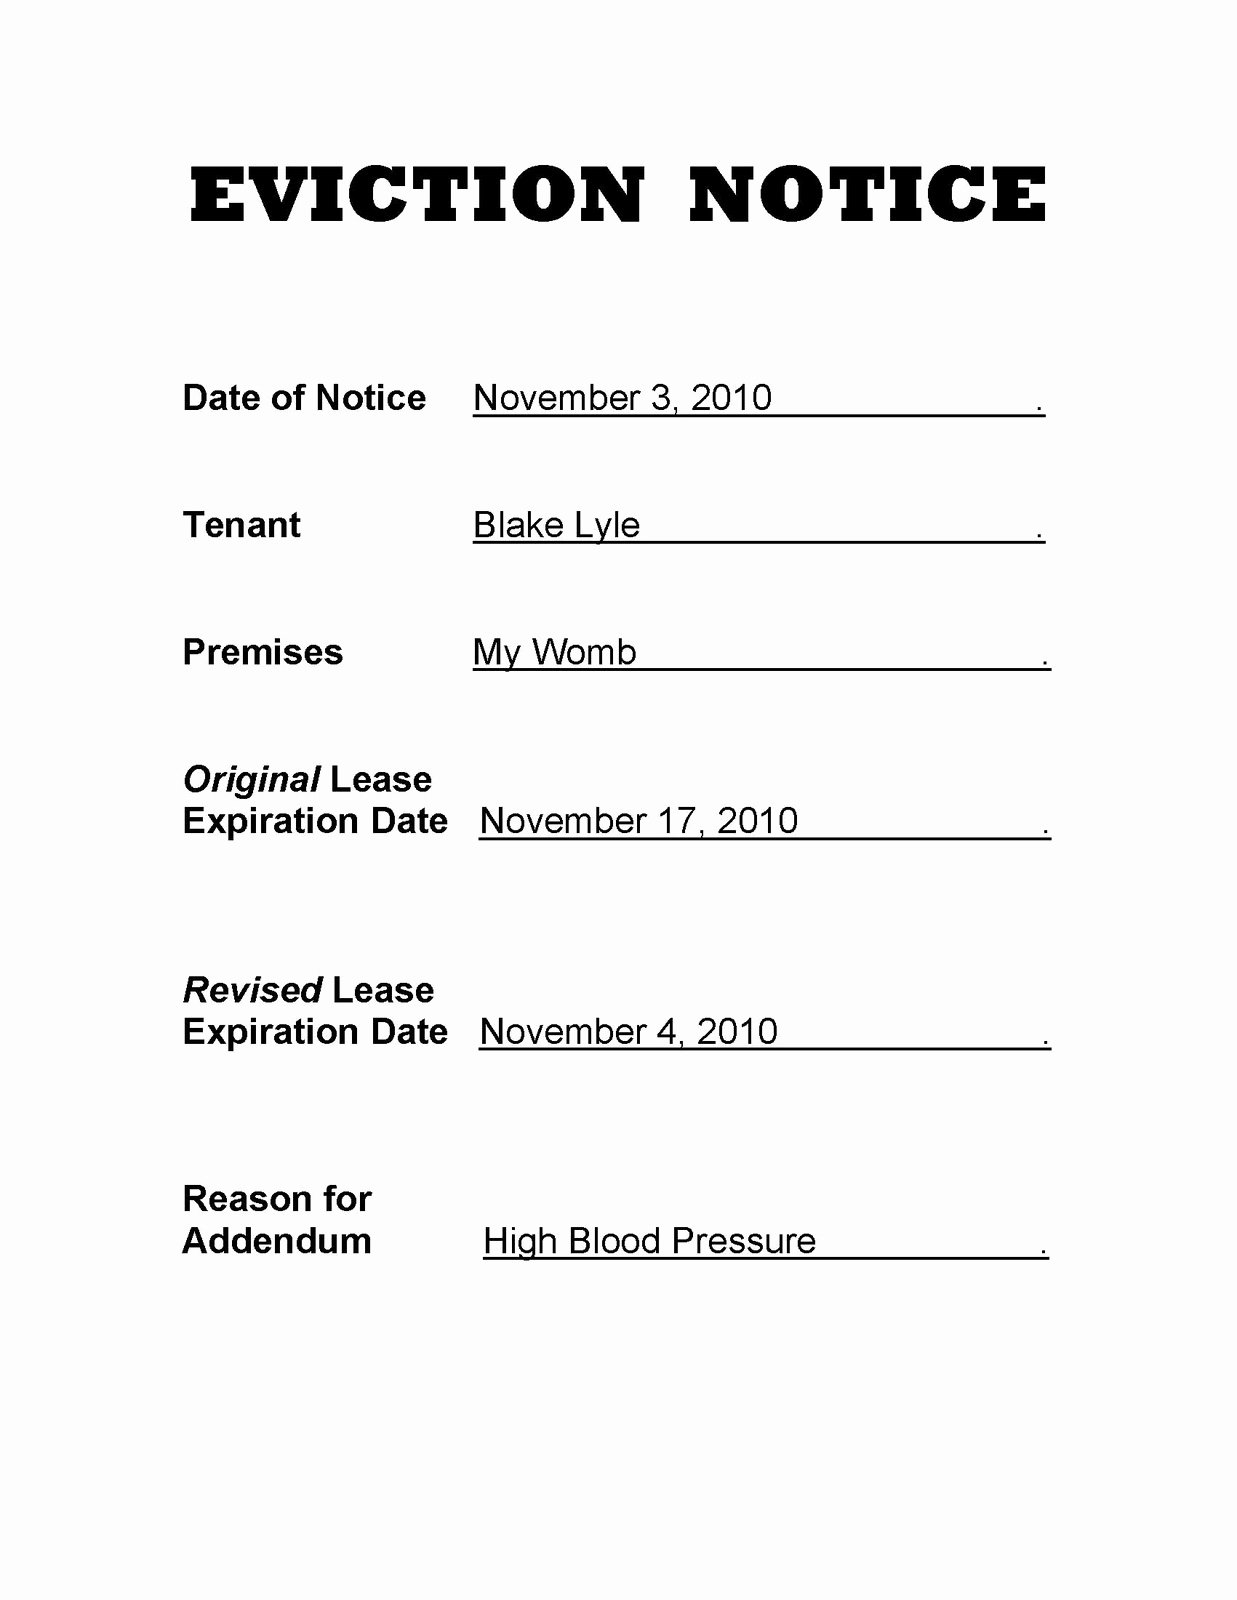 Eviction Notice Pa Template Awesome Does This Count as A Baby Book E Hundred Three It S